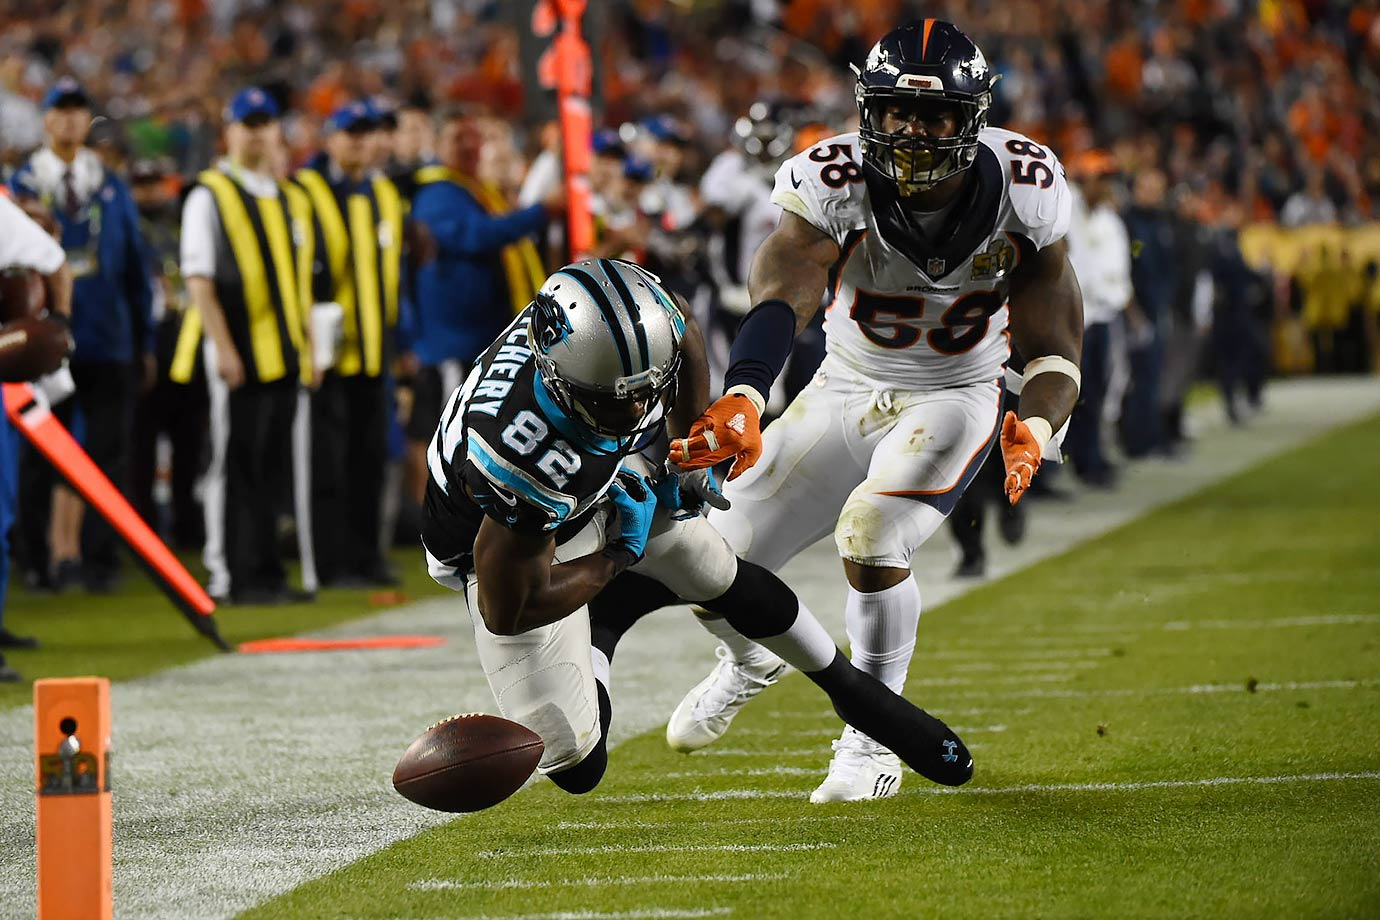 Von Miller prevents Jerricho Cotchery from completing a deep pass early in the third quarter.